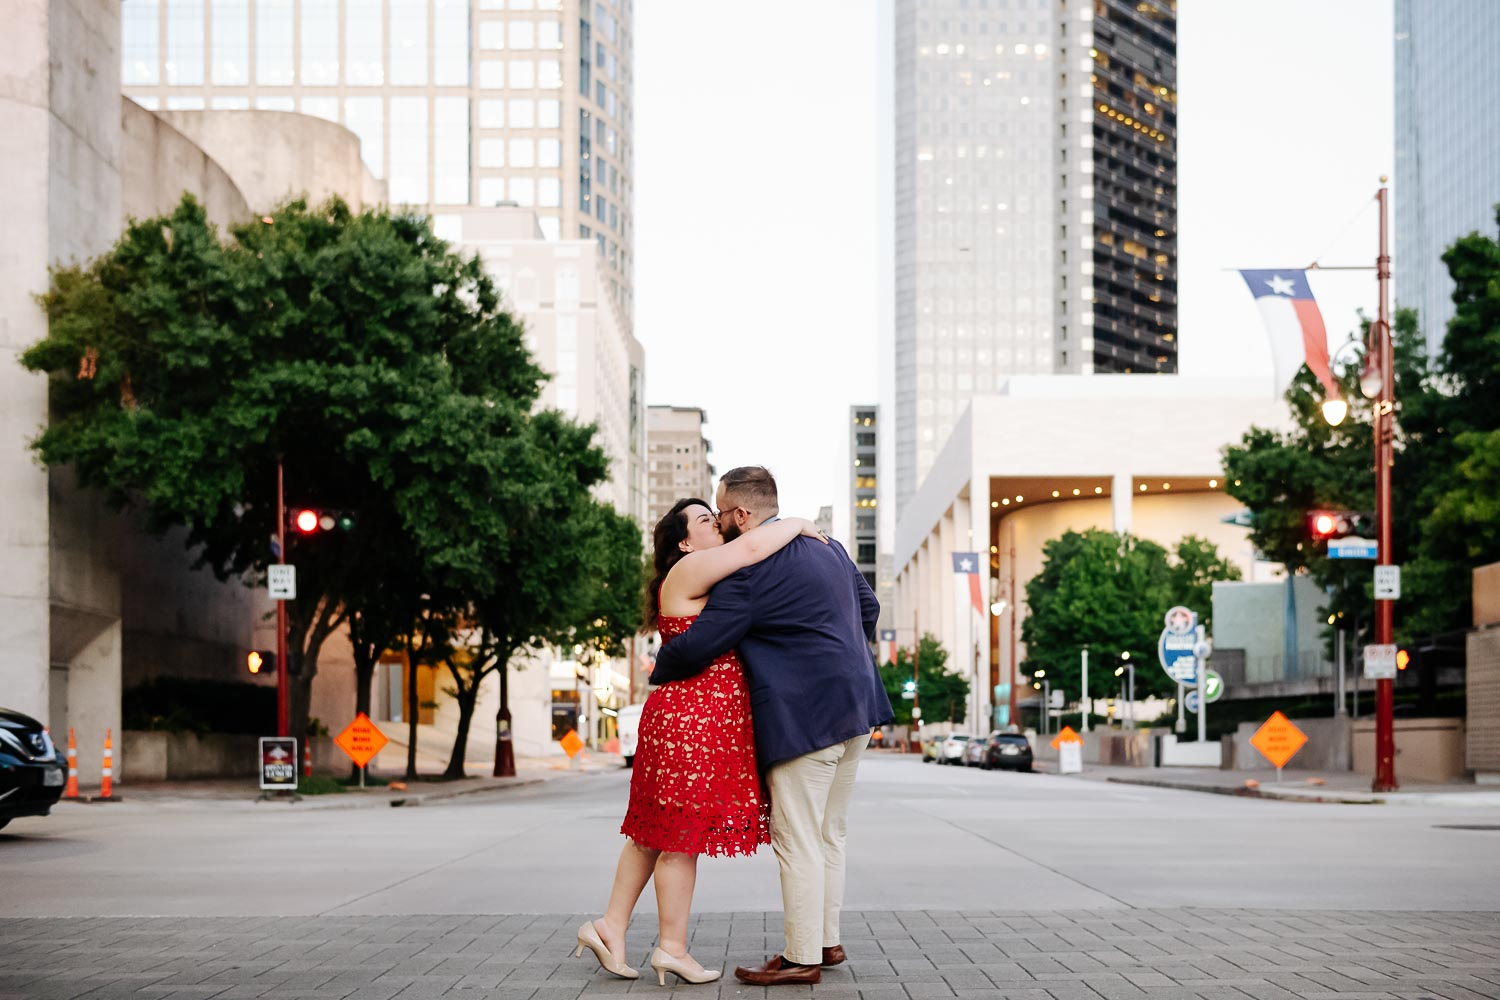 Crossing the street at Luci and Bryans engagement session downtown Theater District Houston Texas-Philip Thomas Photography